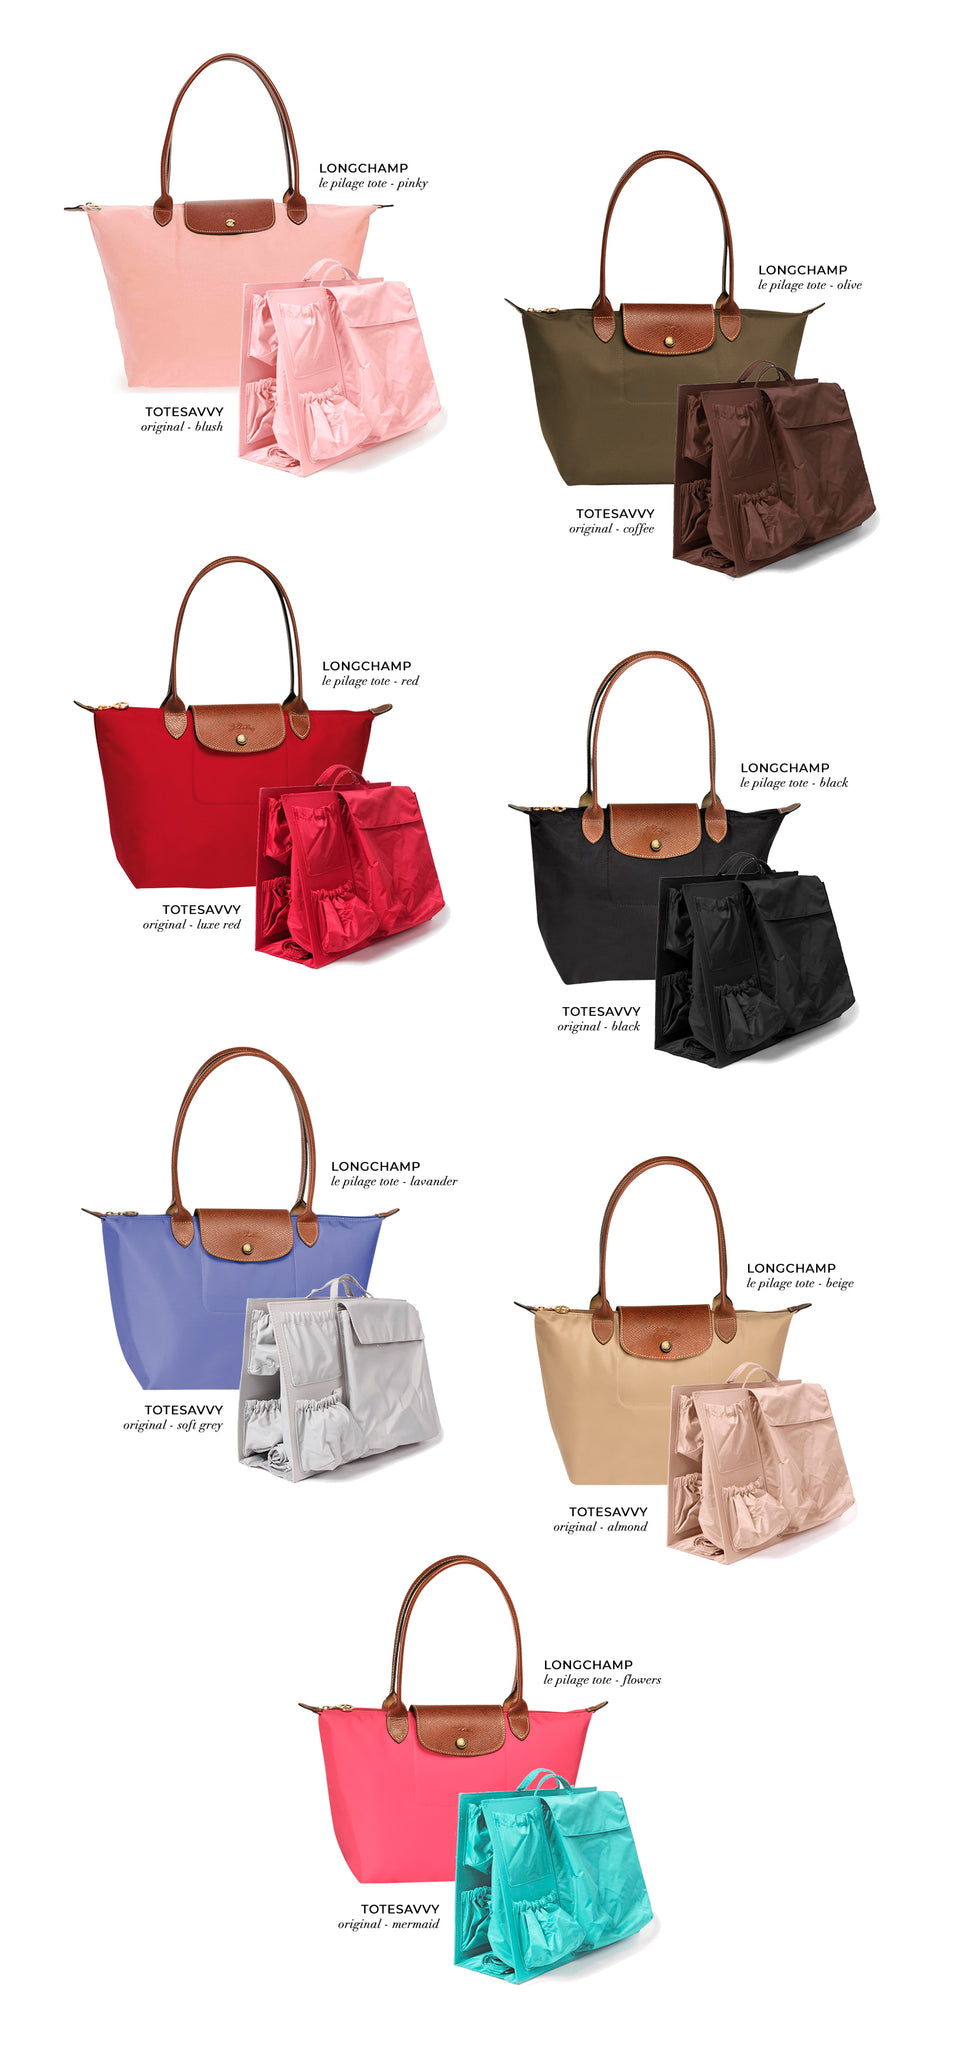 787661e4fda0 What color ToteSavvy is best for your Longchamp tote